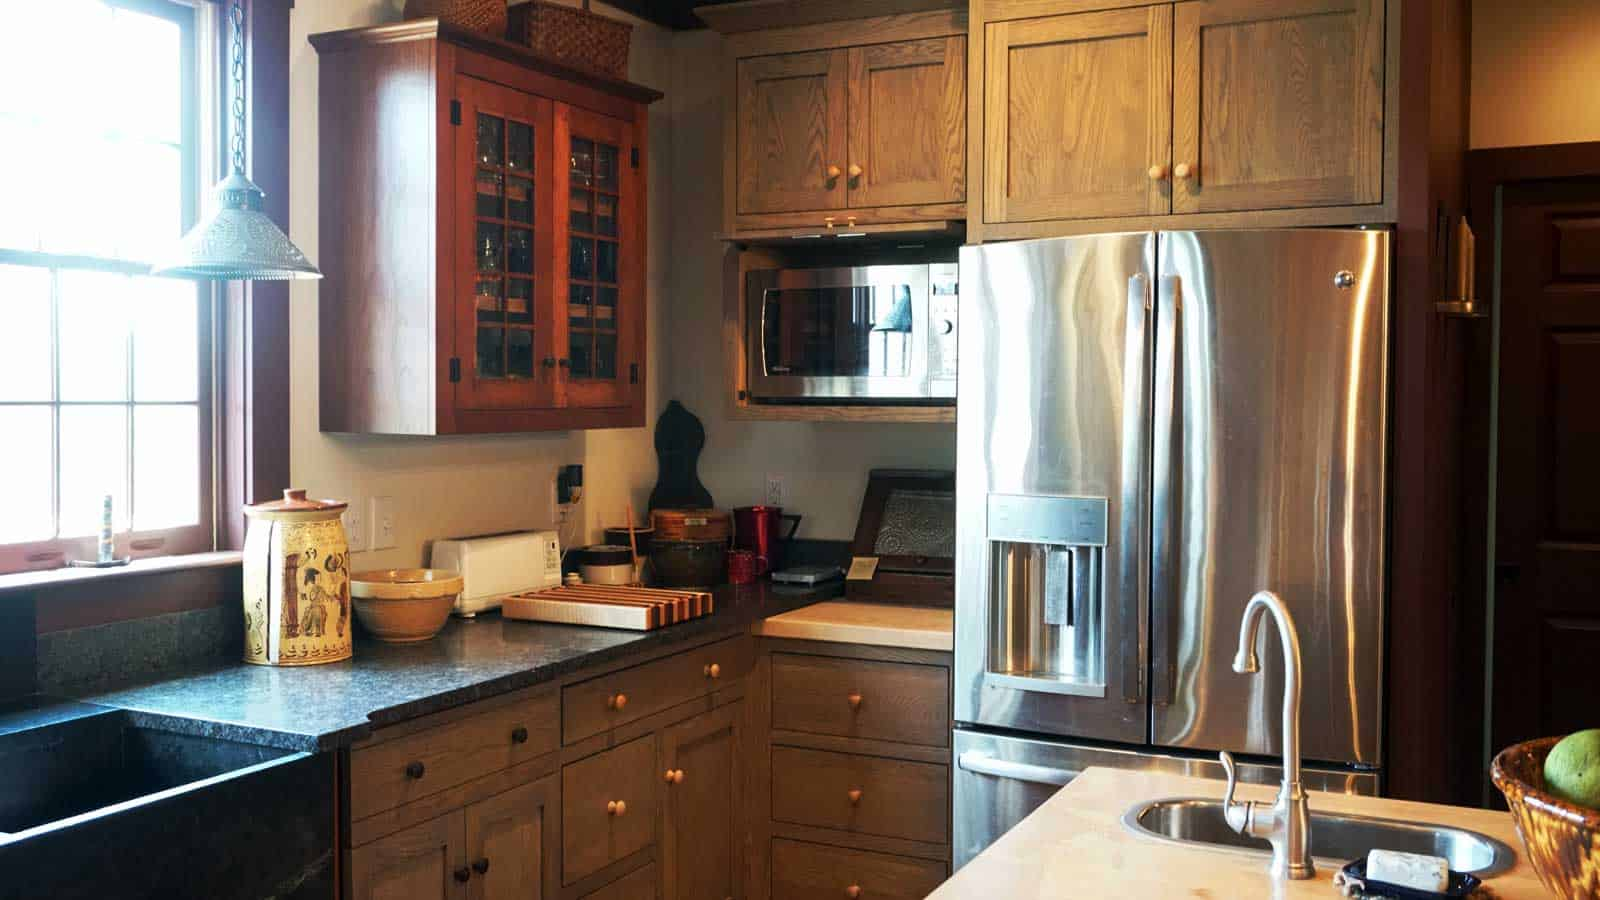 Early American inspired kitchen with cabinet doors designed to hide appliances